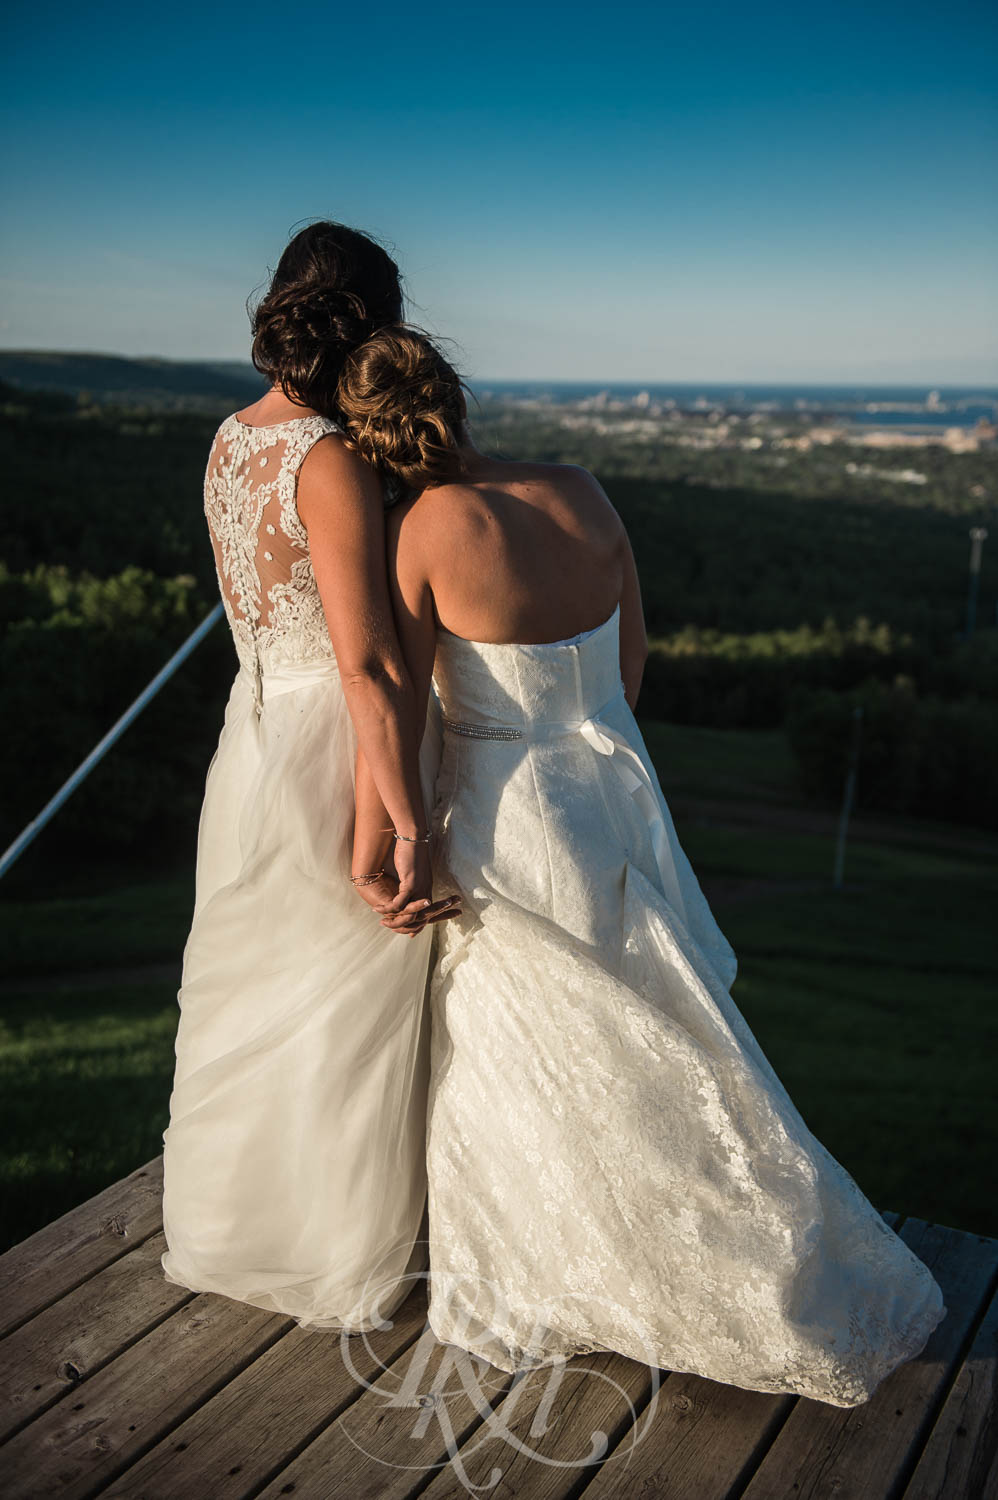 Britni & Paige - LGBT Minnesota Wedding Photography - Spirit Mountain - RKH Images  (30 of 32).jpg